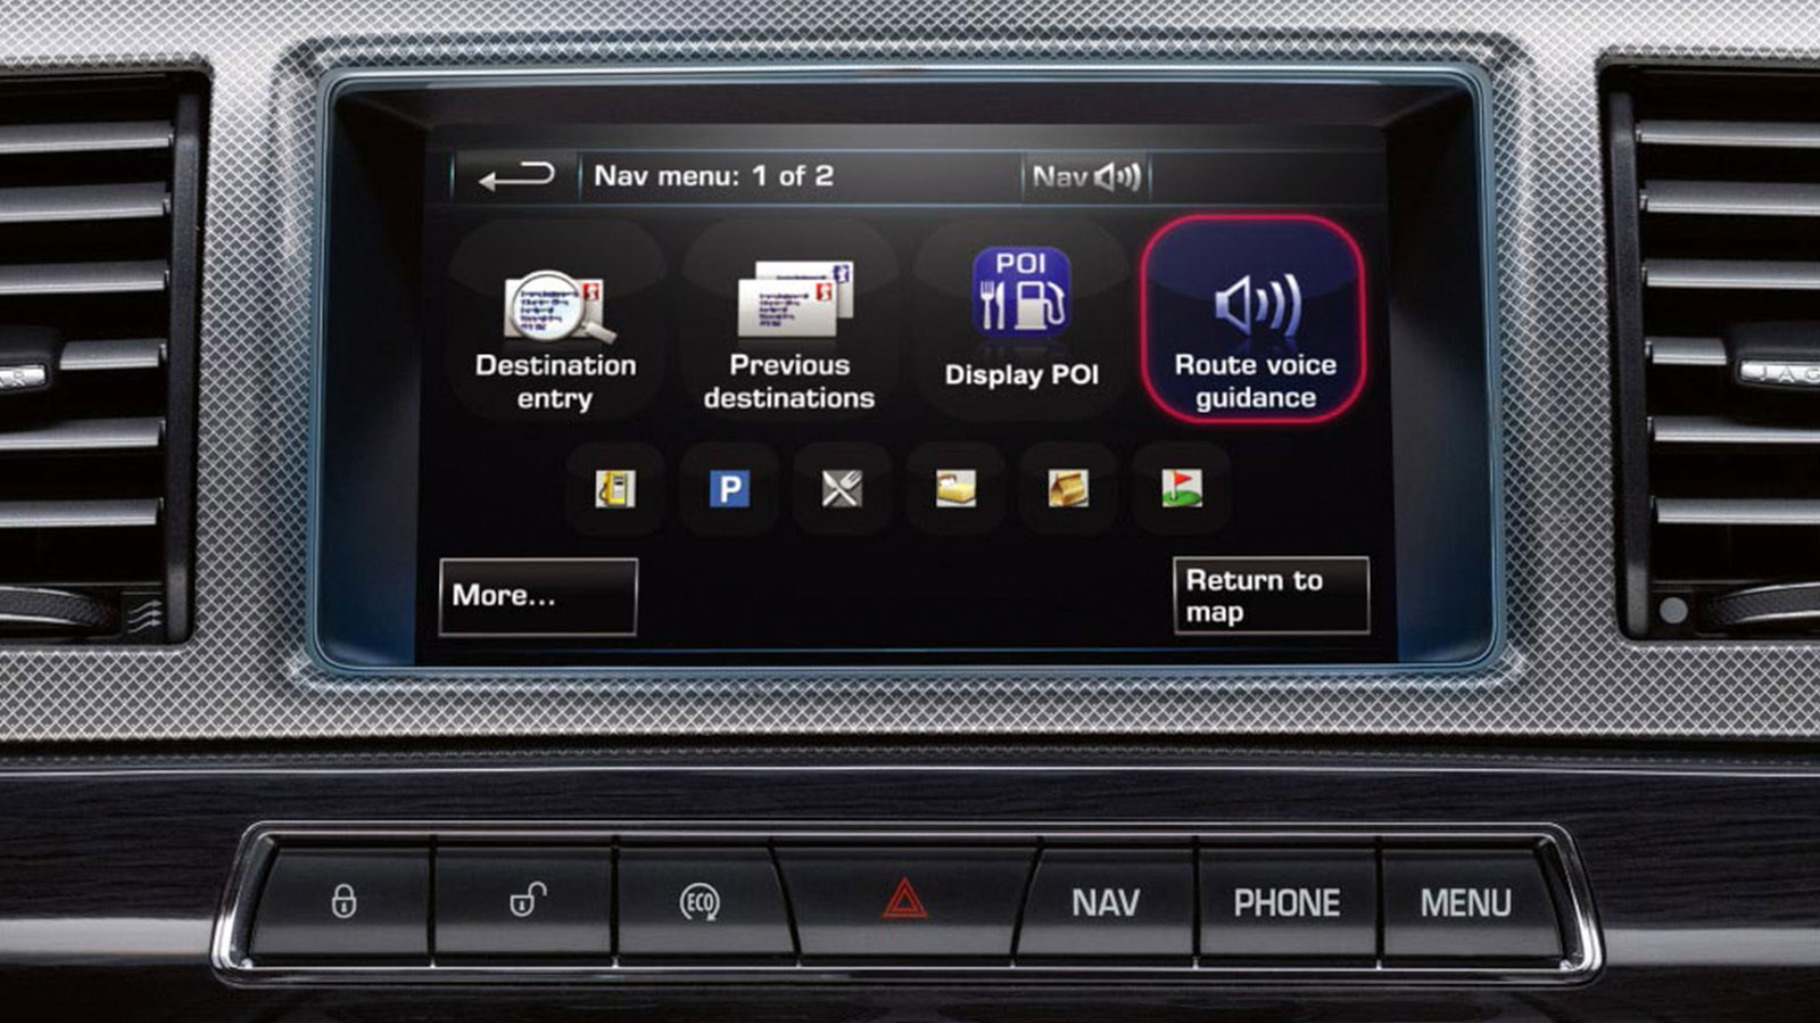 Jaguar XF Navigation System - Voice Guidance